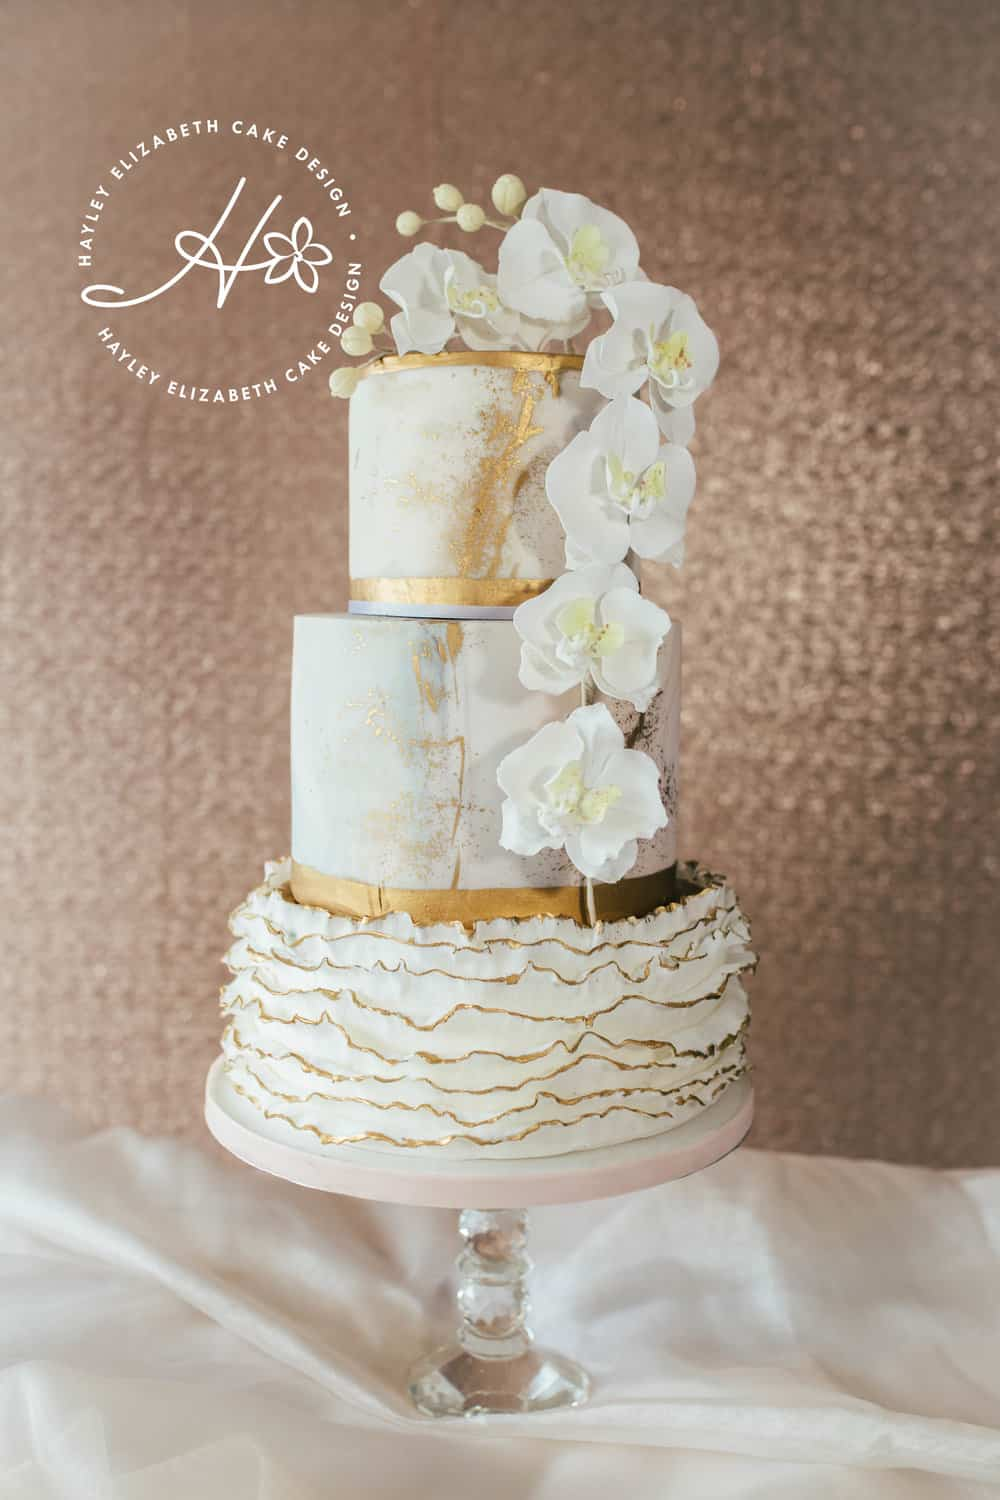 Luxury wedding cakes \u0026 dessert tables in Dorset \u0026 Hampshire